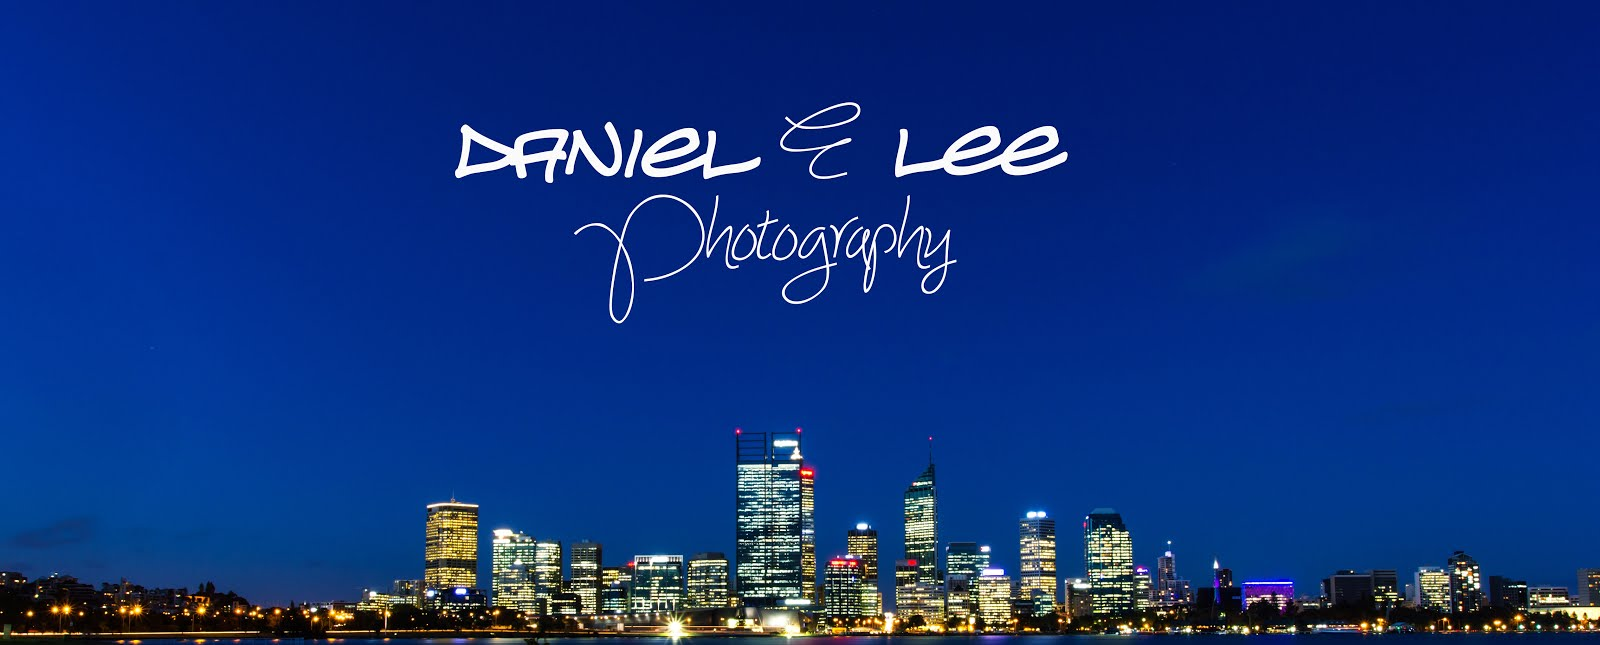 Daniel E Lee Photography